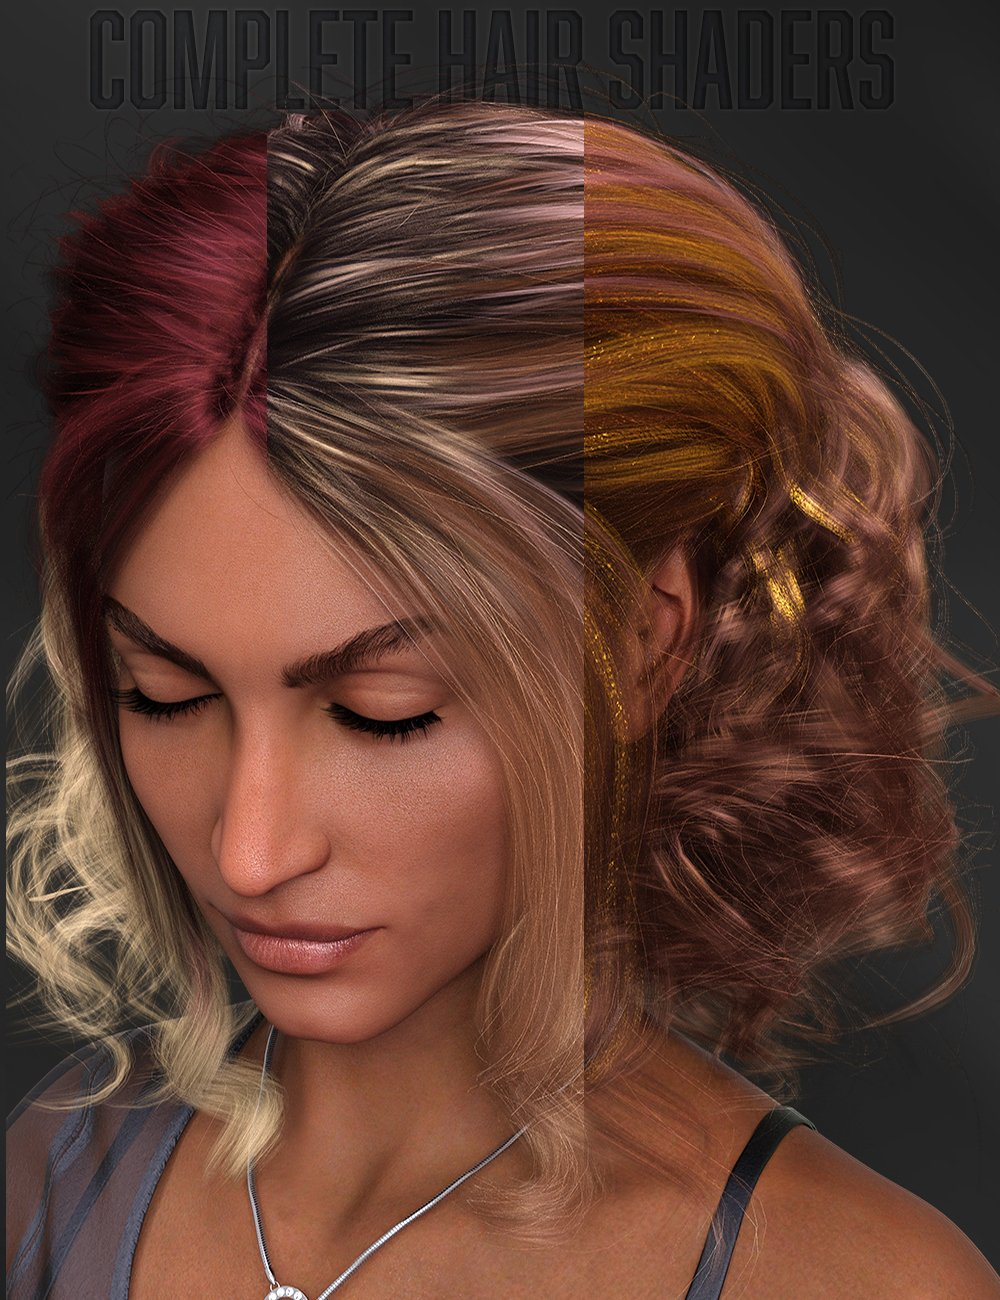 Twizted Complete Iray Hair Shaders by: TwiztedMetal, 3D Models by Daz 3D